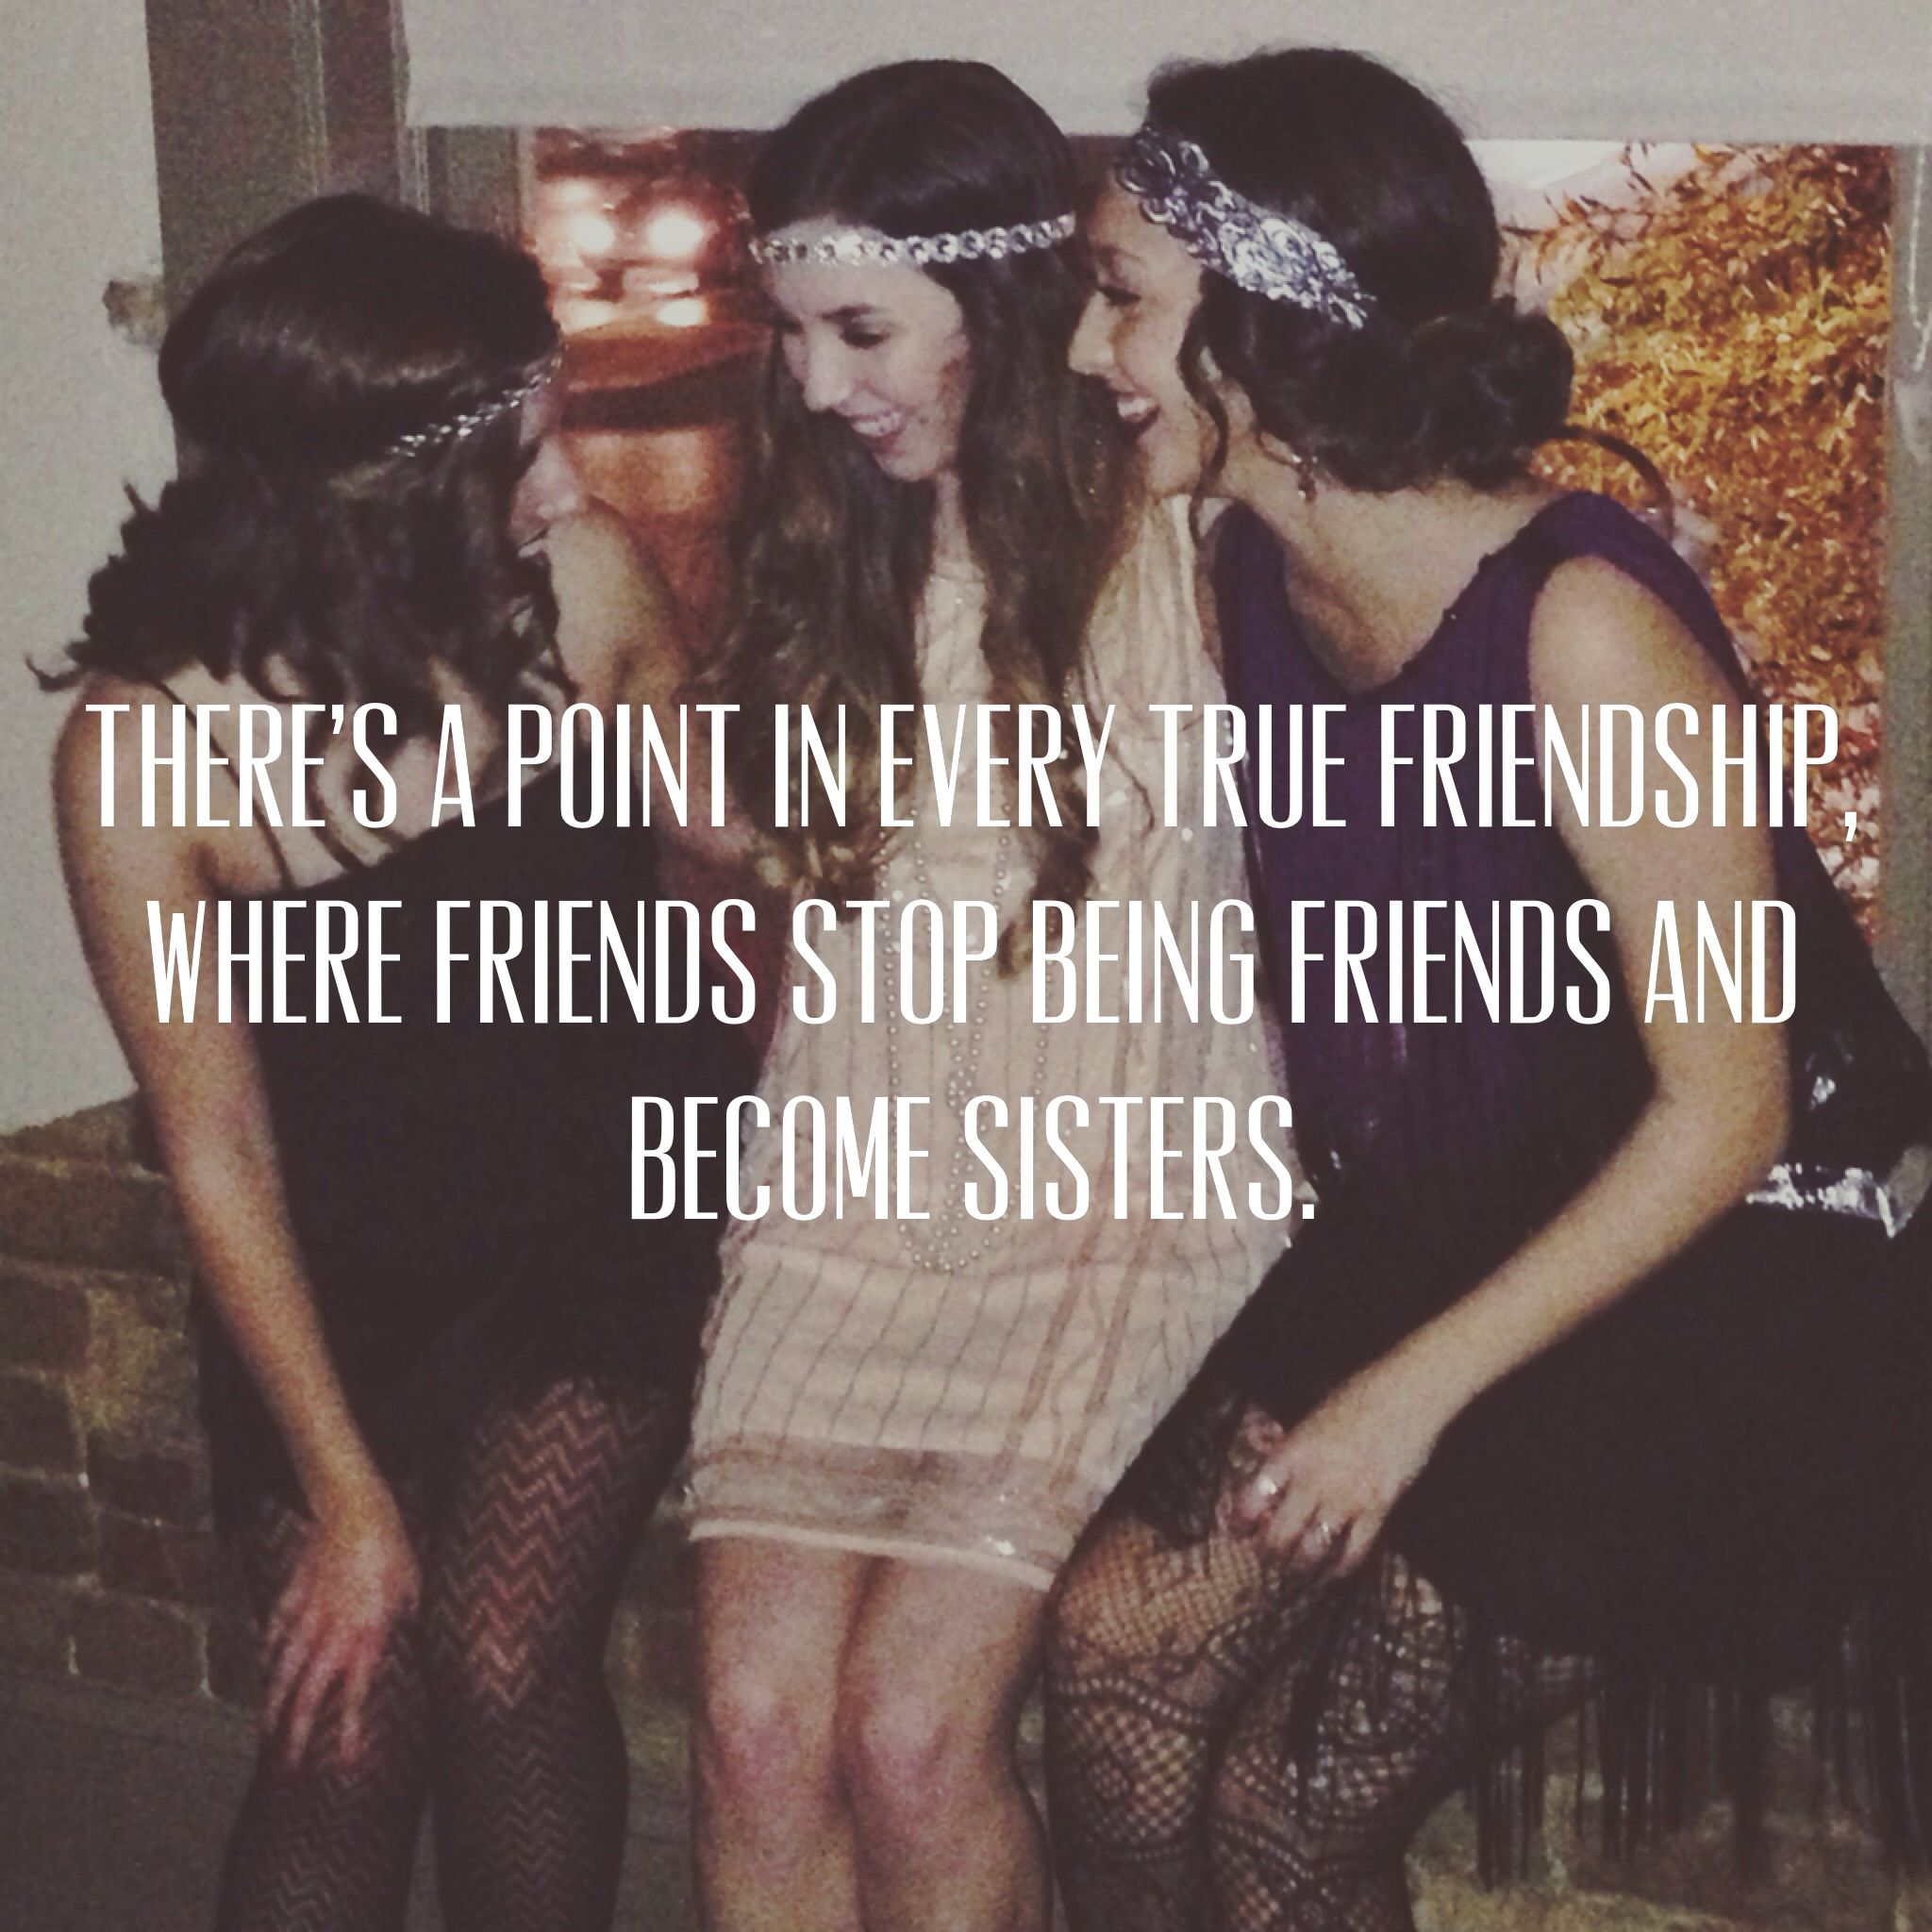 Quotes About Friends Being Sisters Friendship Quotes Like...